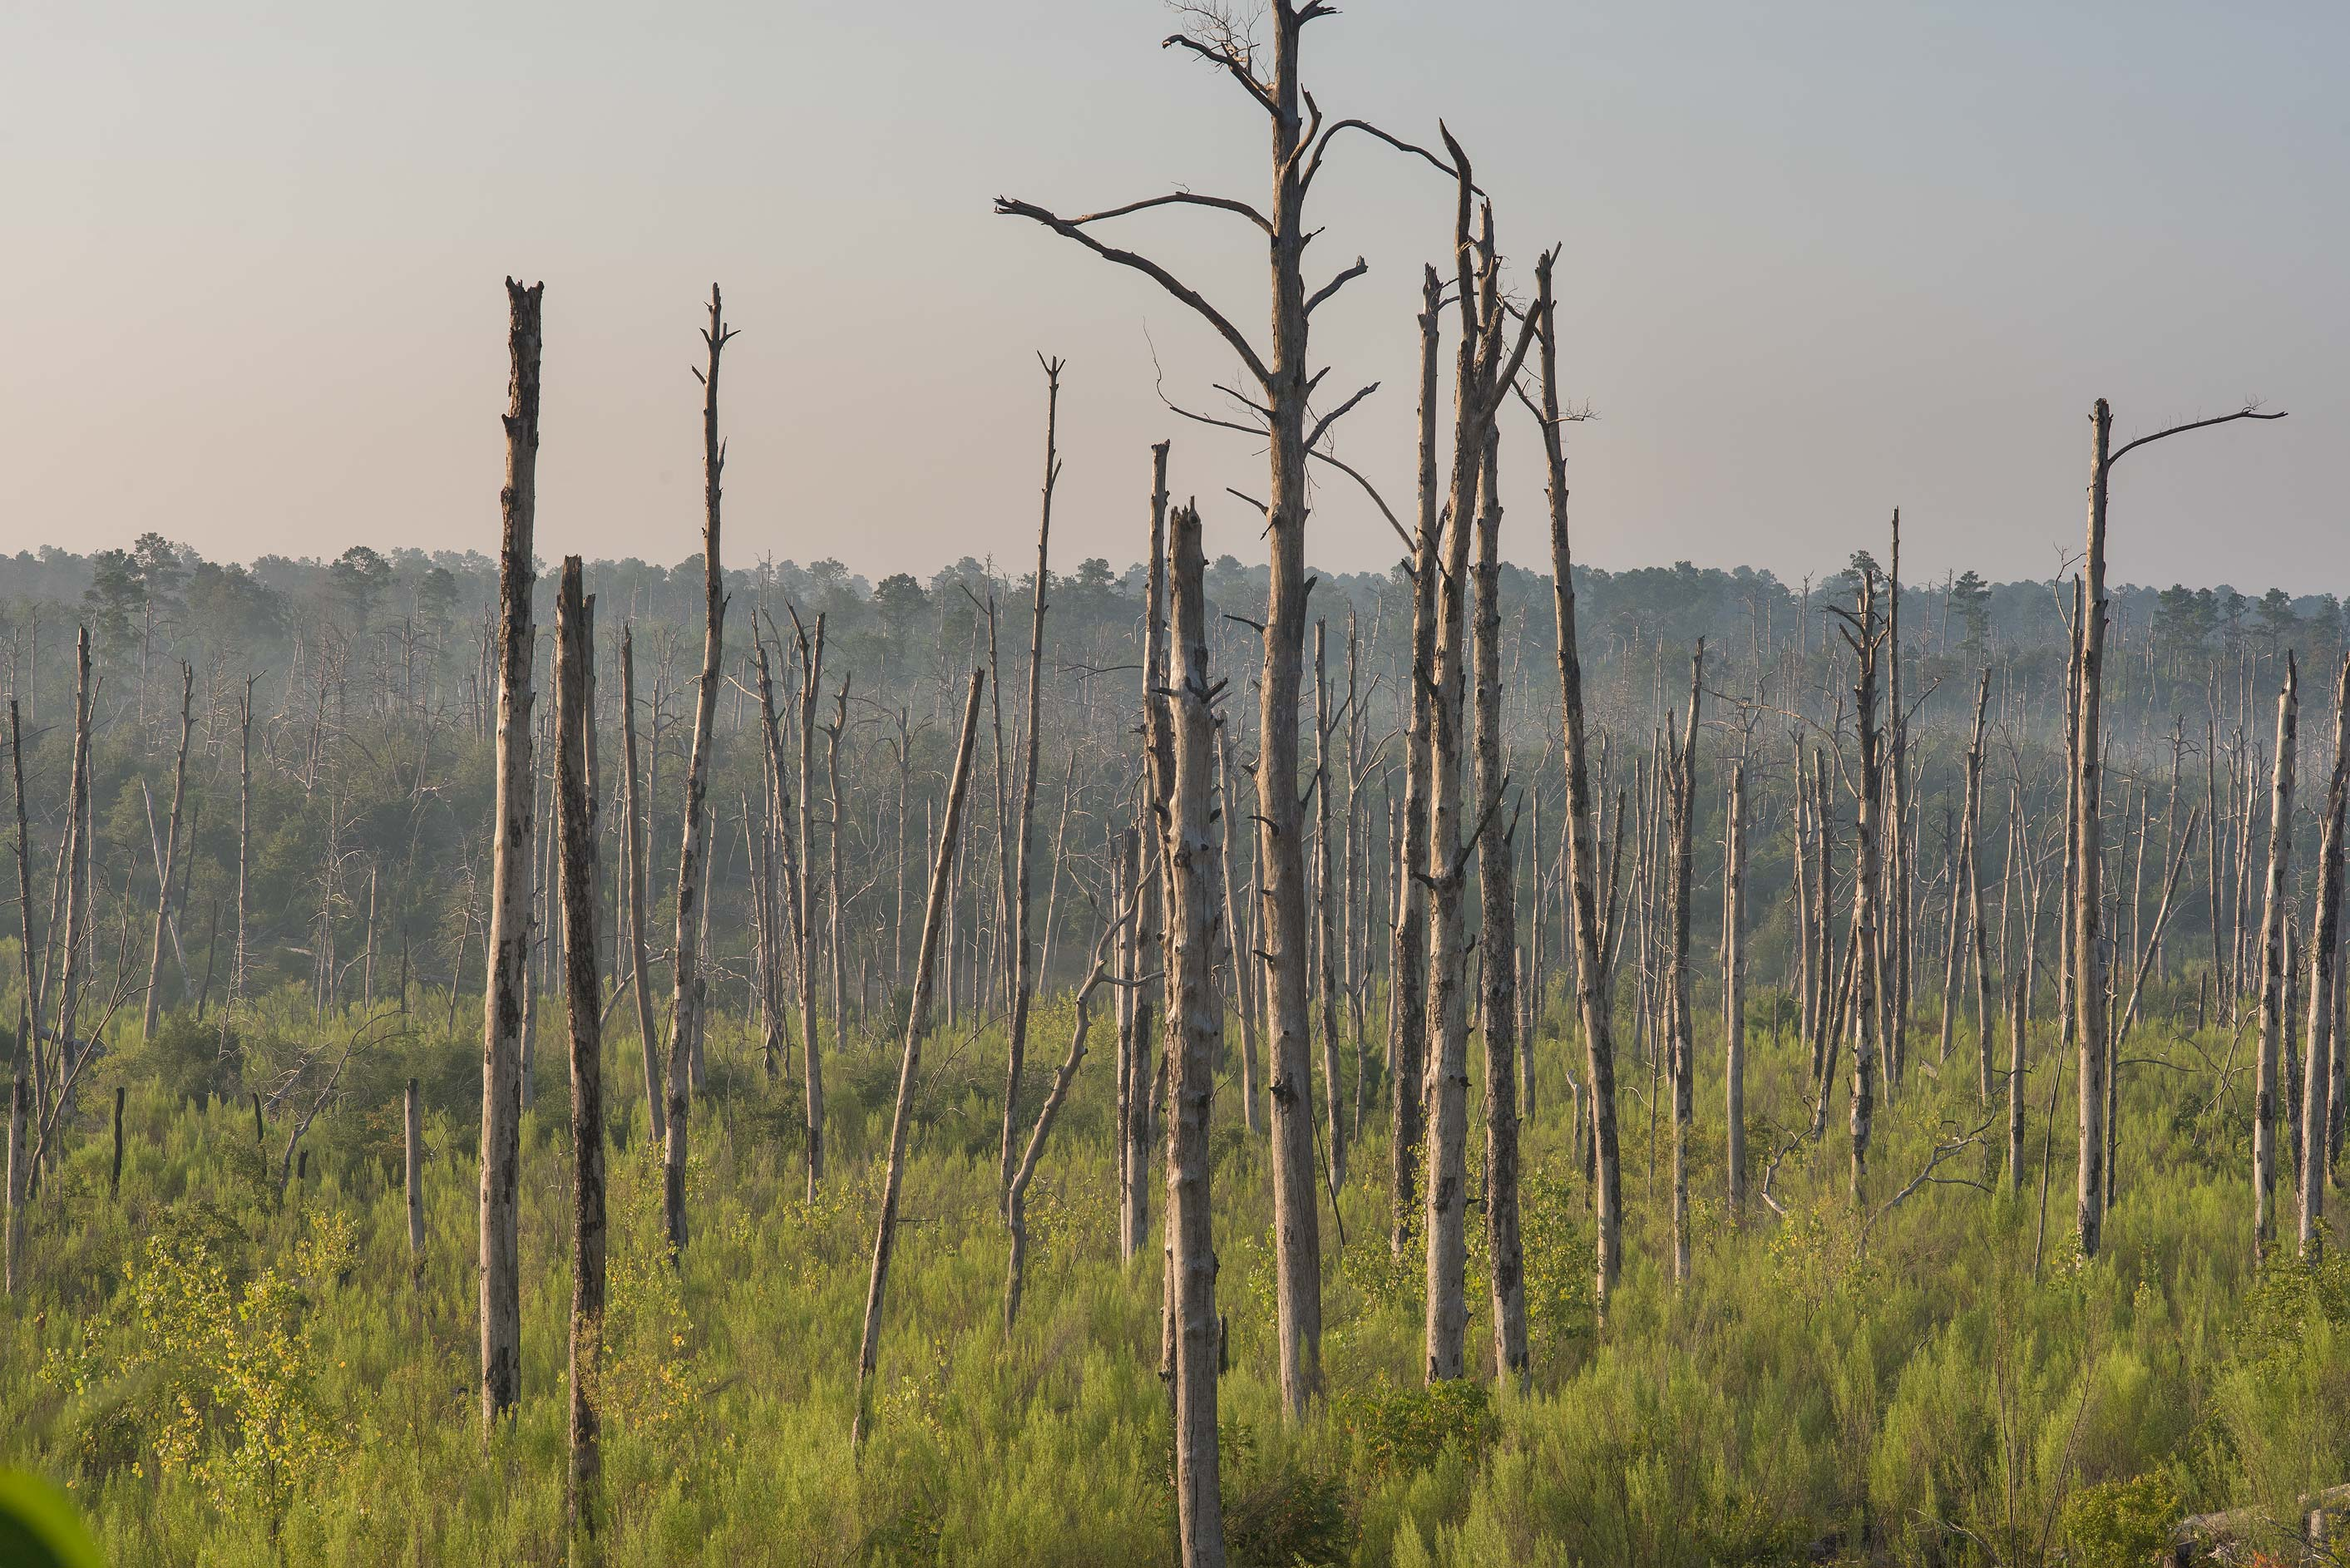 Remains of pine forest near Scenic Overlook in Bastrop State Park. Bastrop, Texas